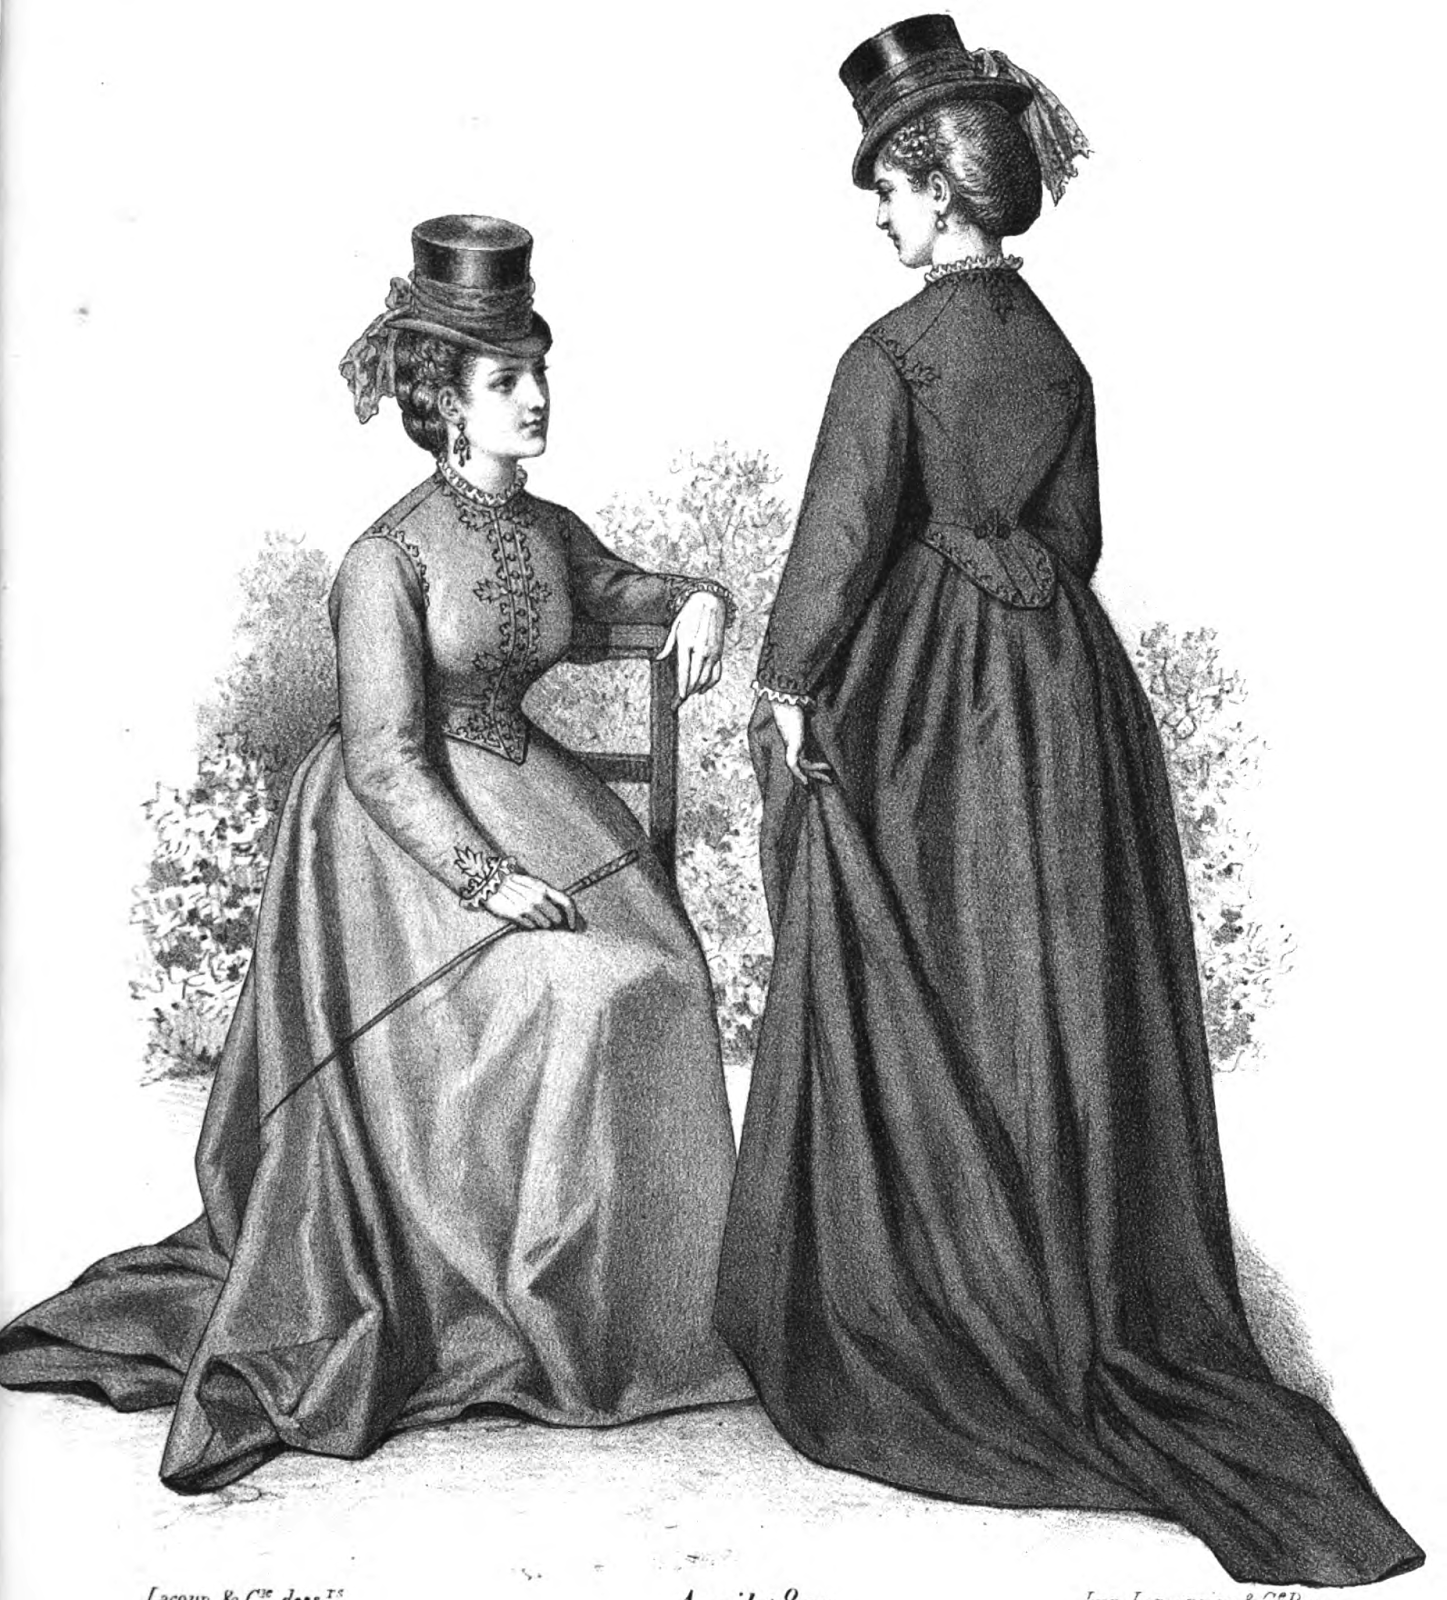 Historical: 19th Century Historical Tidbits: 1872 Historical Fashions